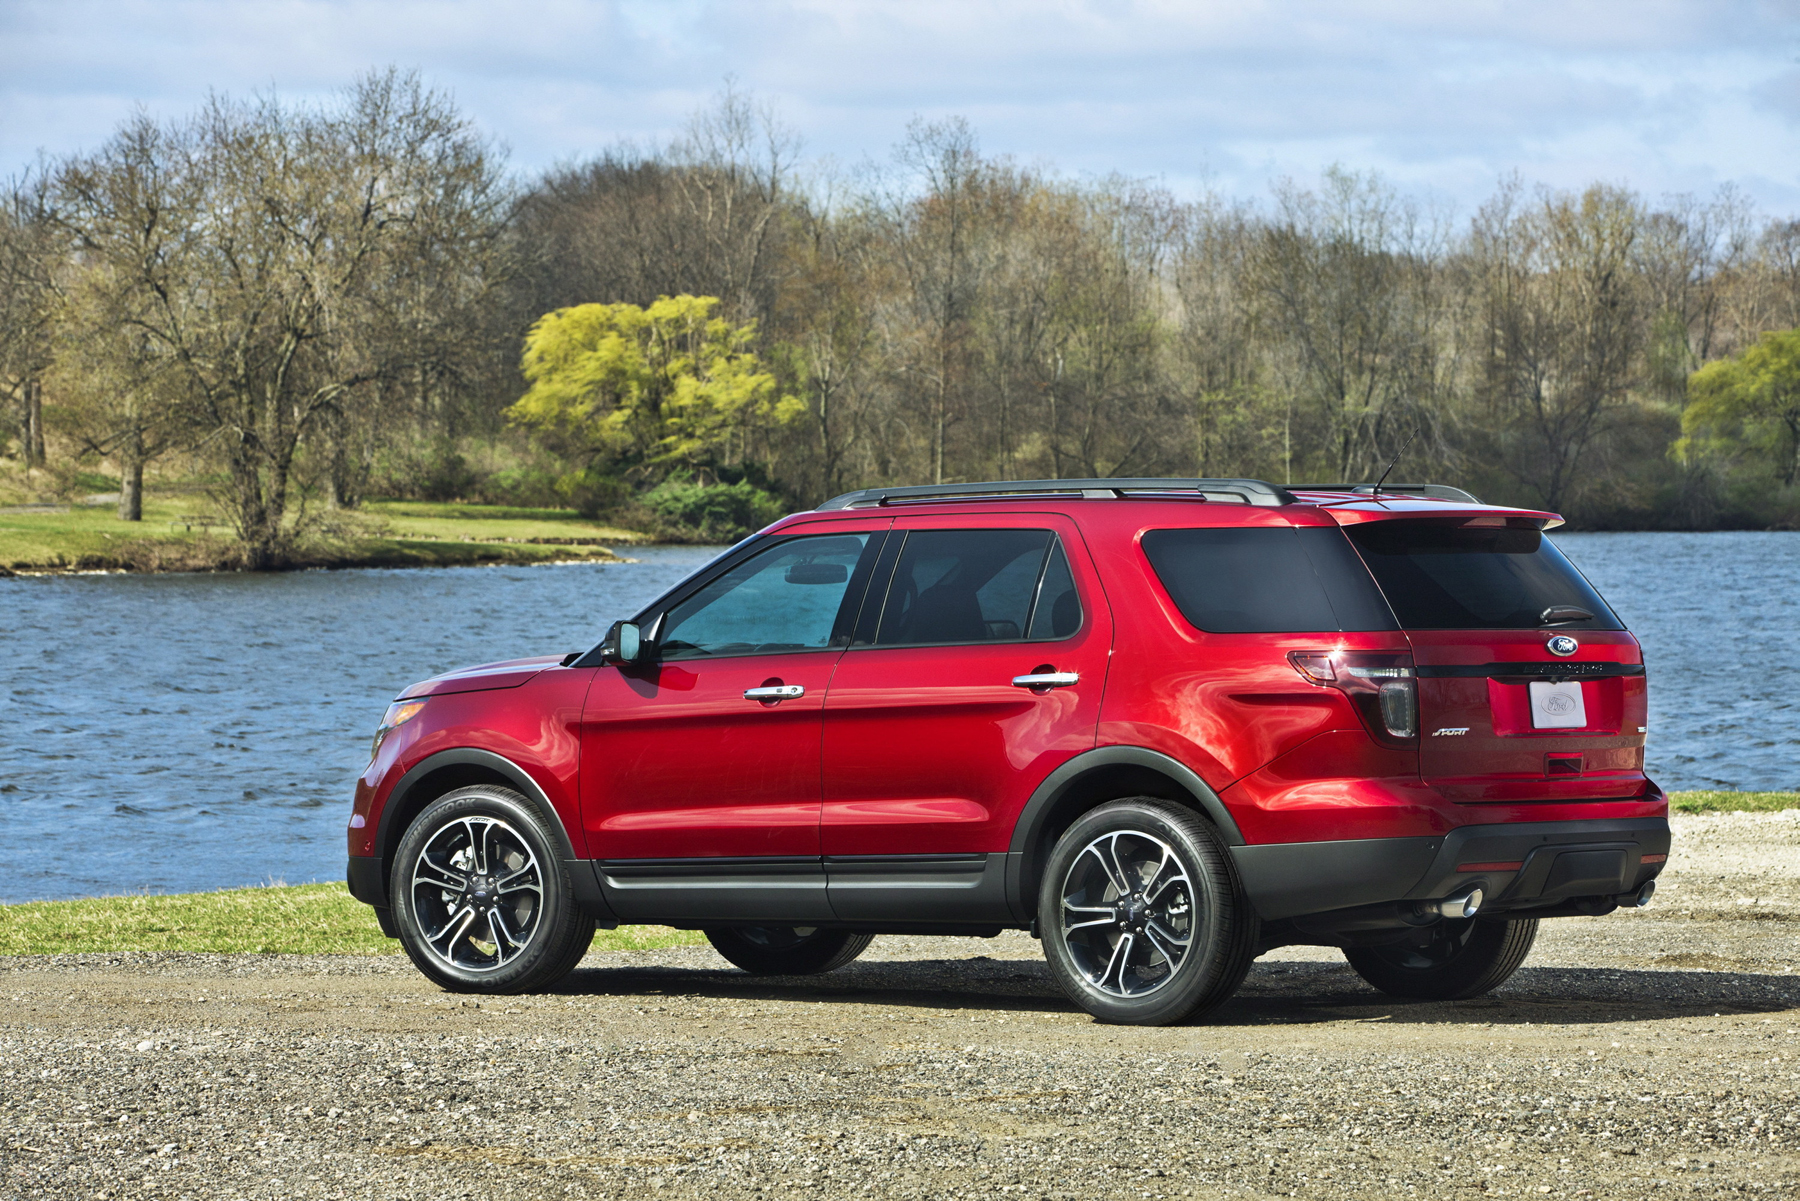 high performance suv 2013 ford explorer sport new on wheels groovecar. Black Bedroom Furniture Sets. Home Design Ideas